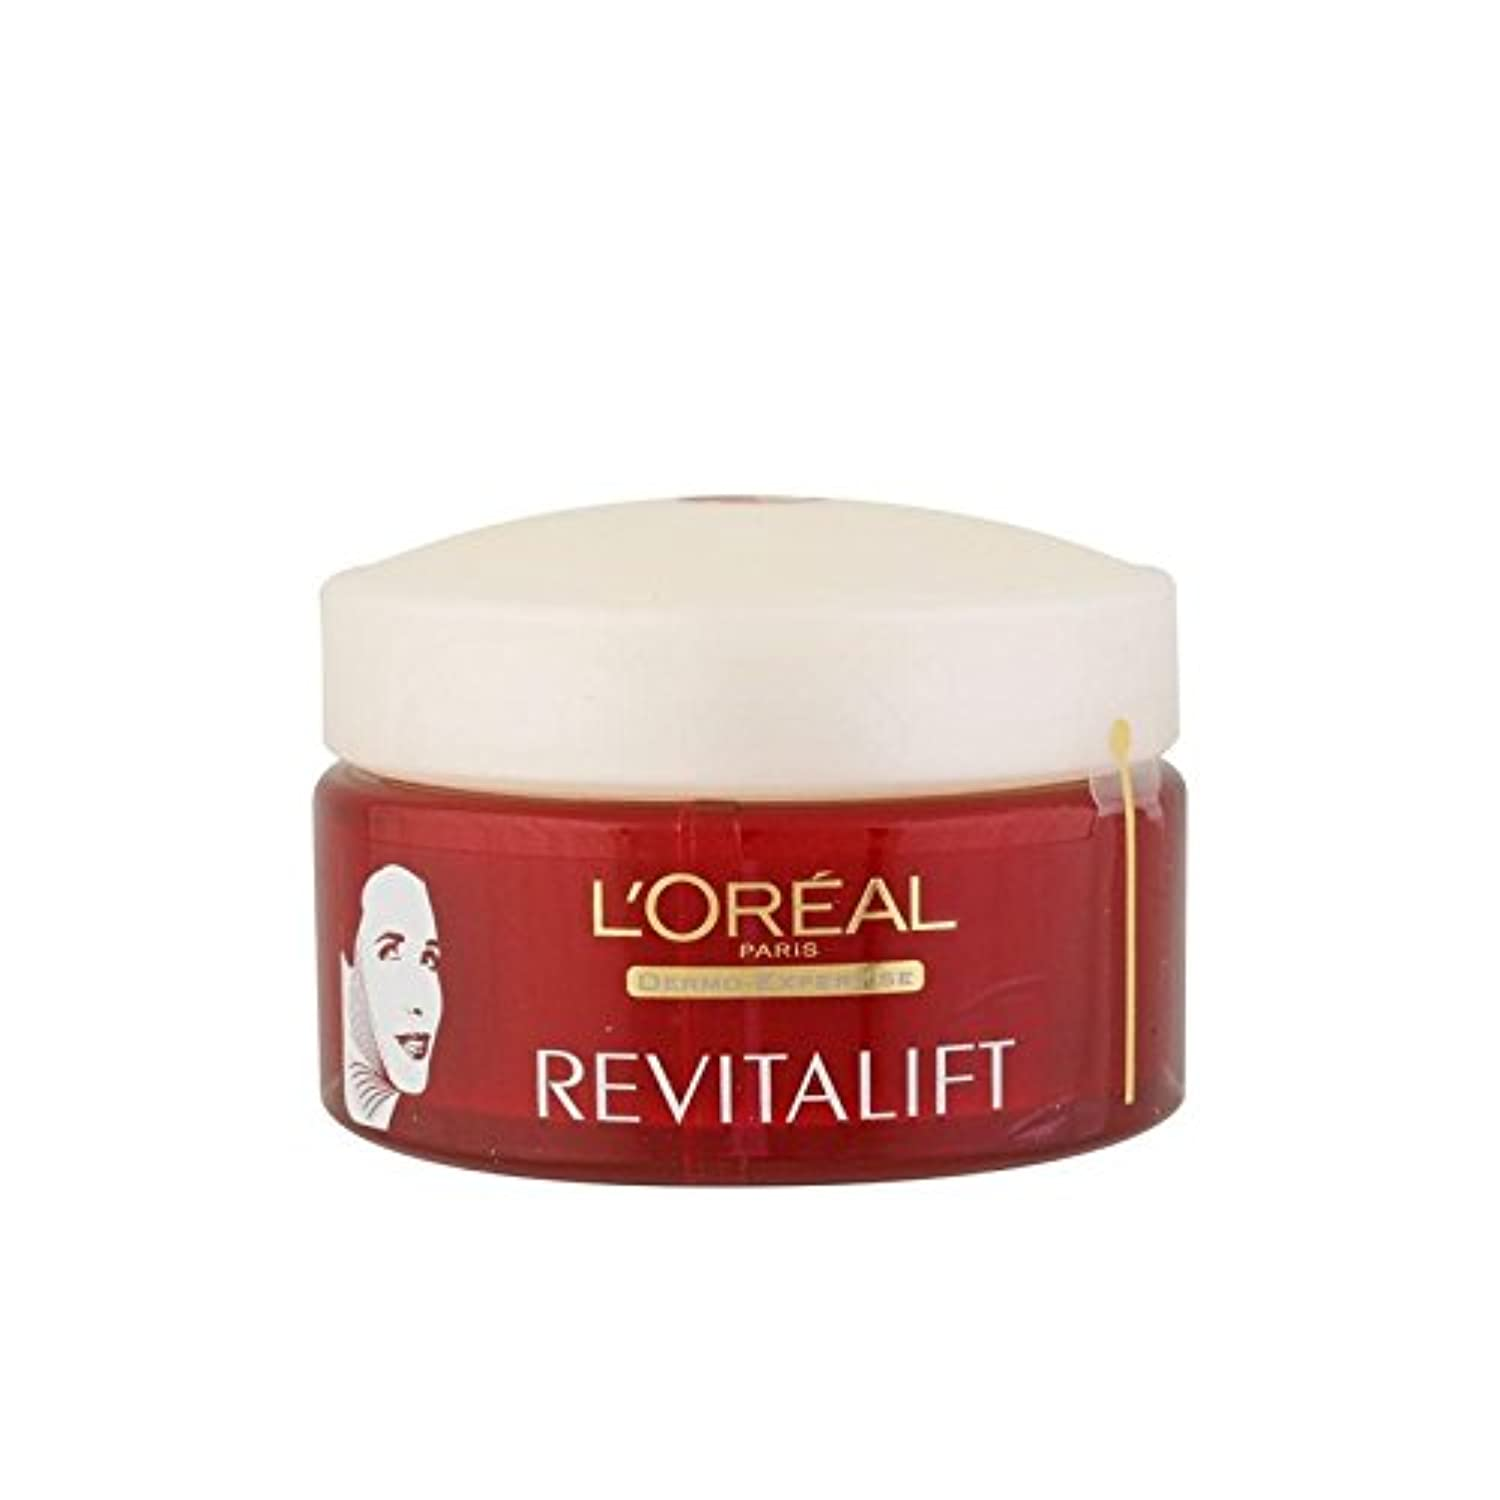 L'Oreal Paris Dermo Expertise Revitalift Face Contours And Neck Re-Support Cream (50ml) (Pack of 6) - ロレアルパリ?ダーモ...